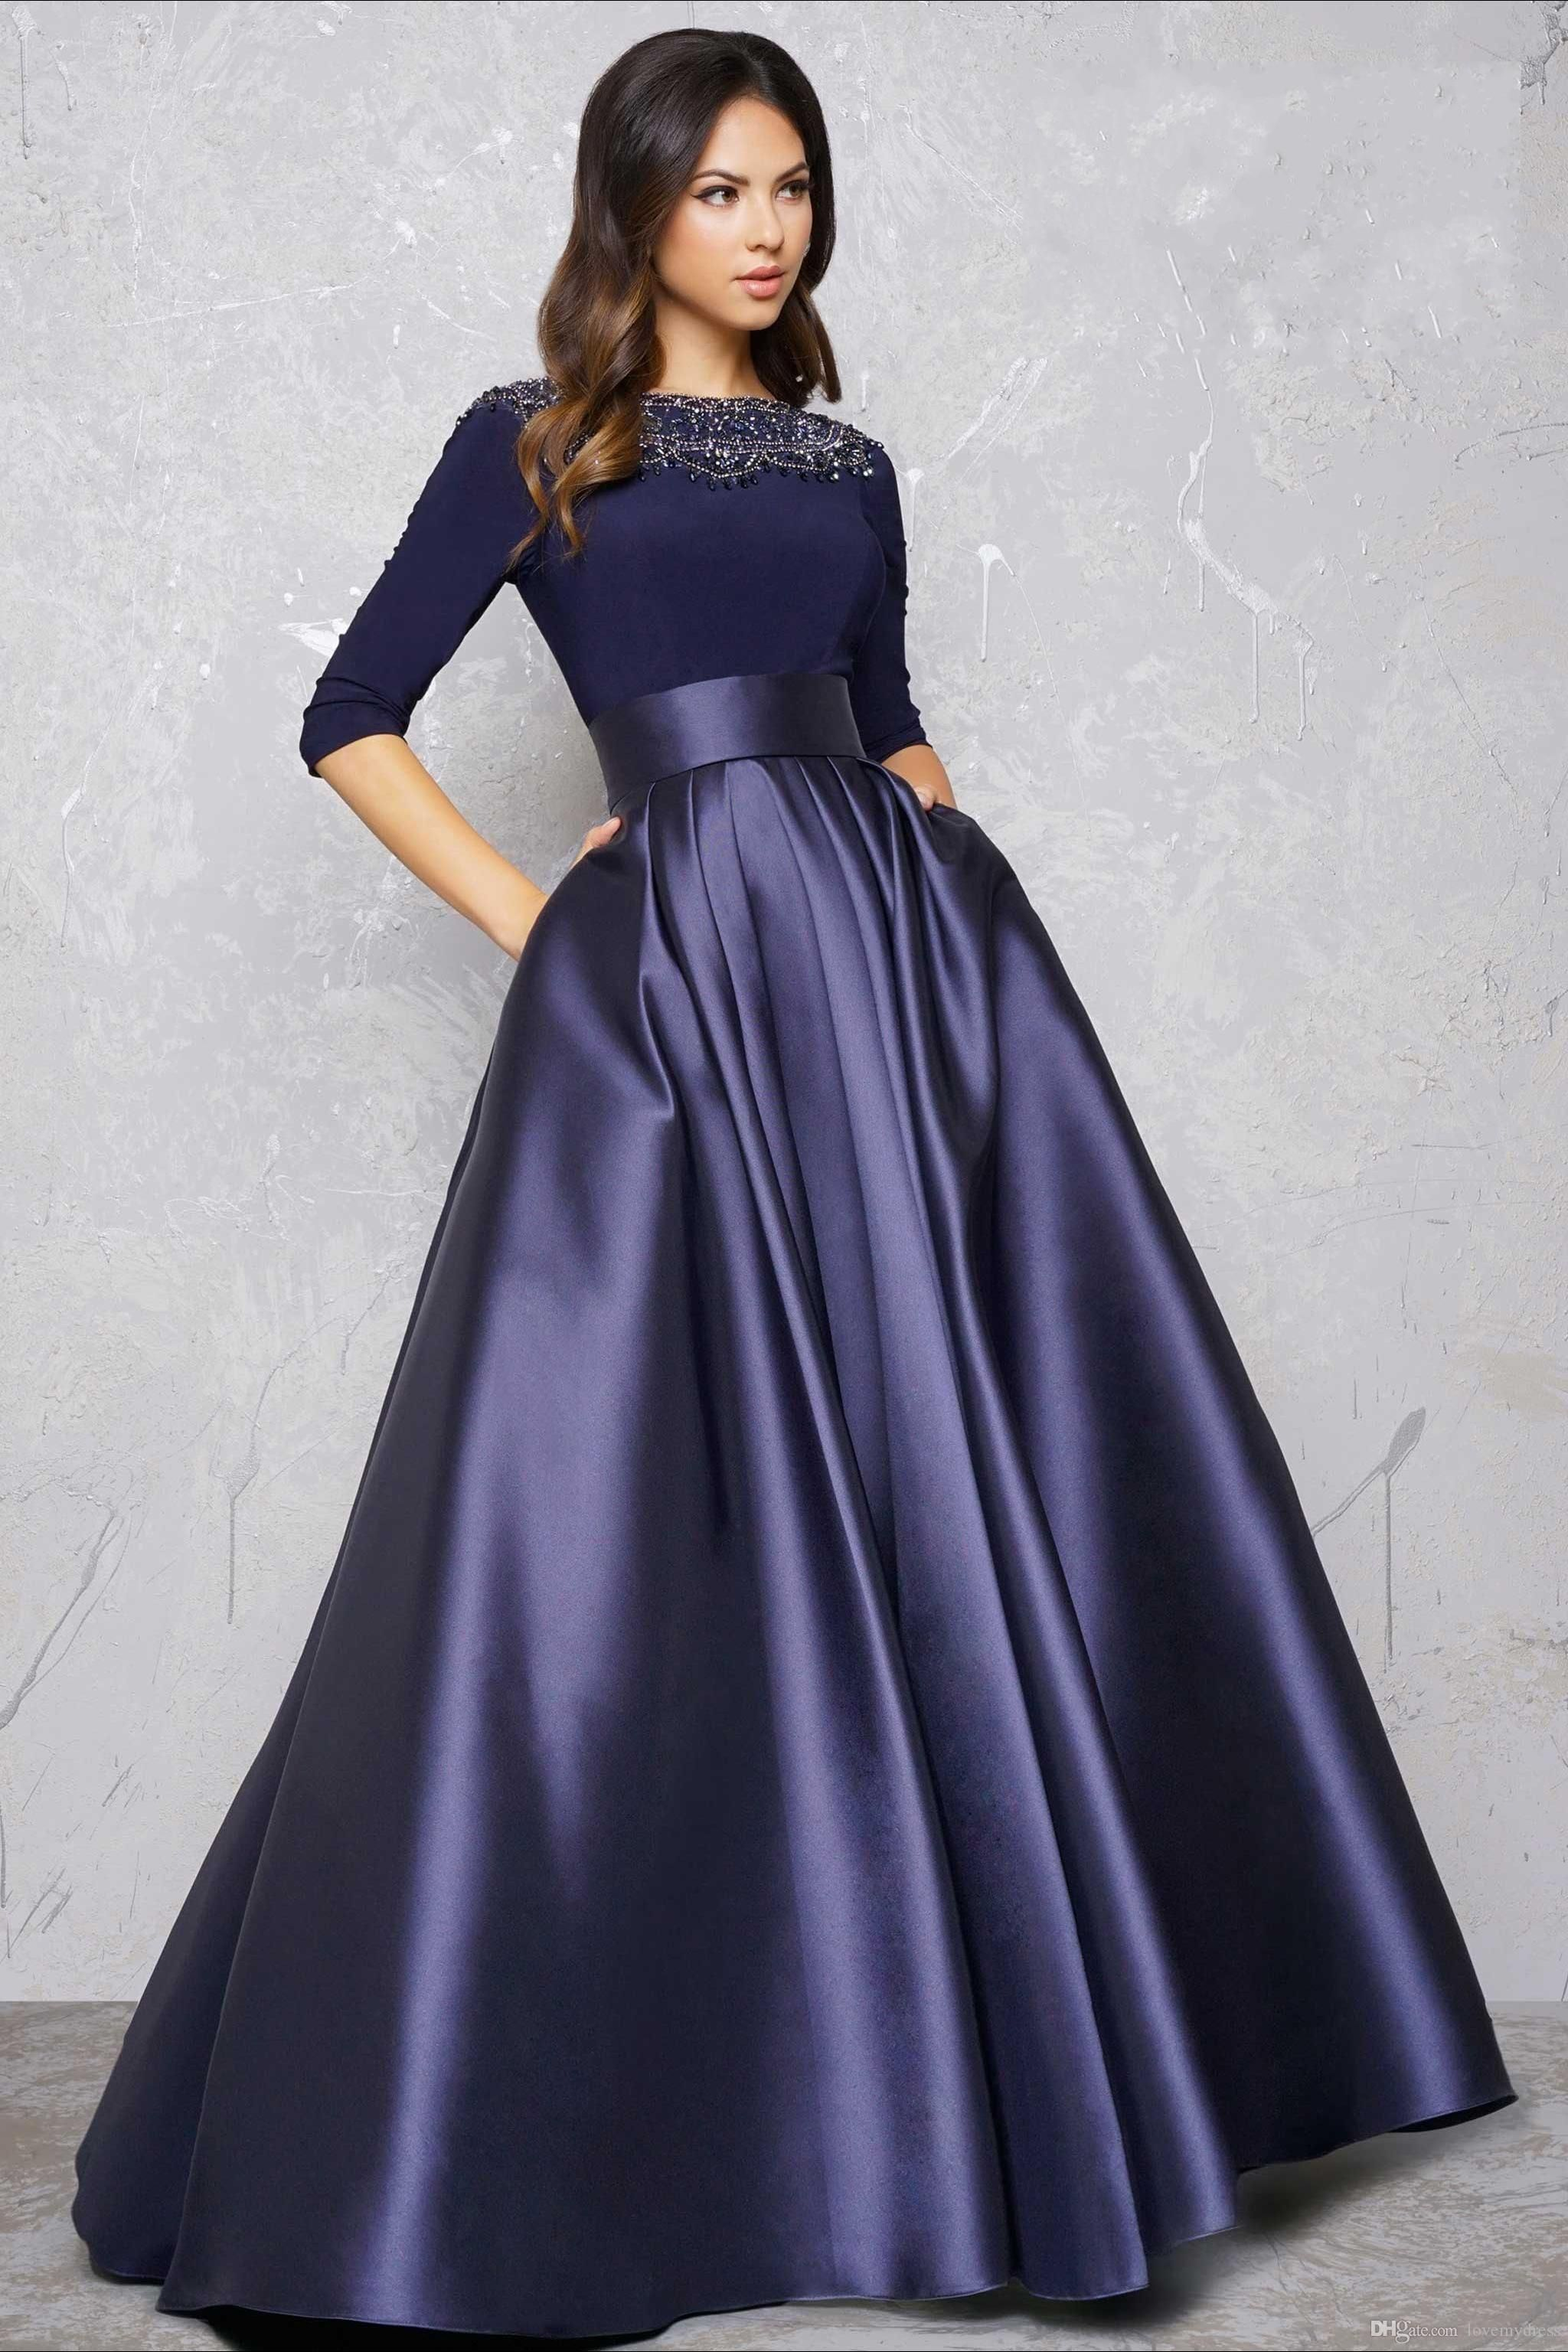 Long Sleeve Evening Gowns Formal Dress A Line Party Dress High Quality Prom  Dress Beadings Elegant Floor Length Sexy Simple Design Cheap 28eefc49c701